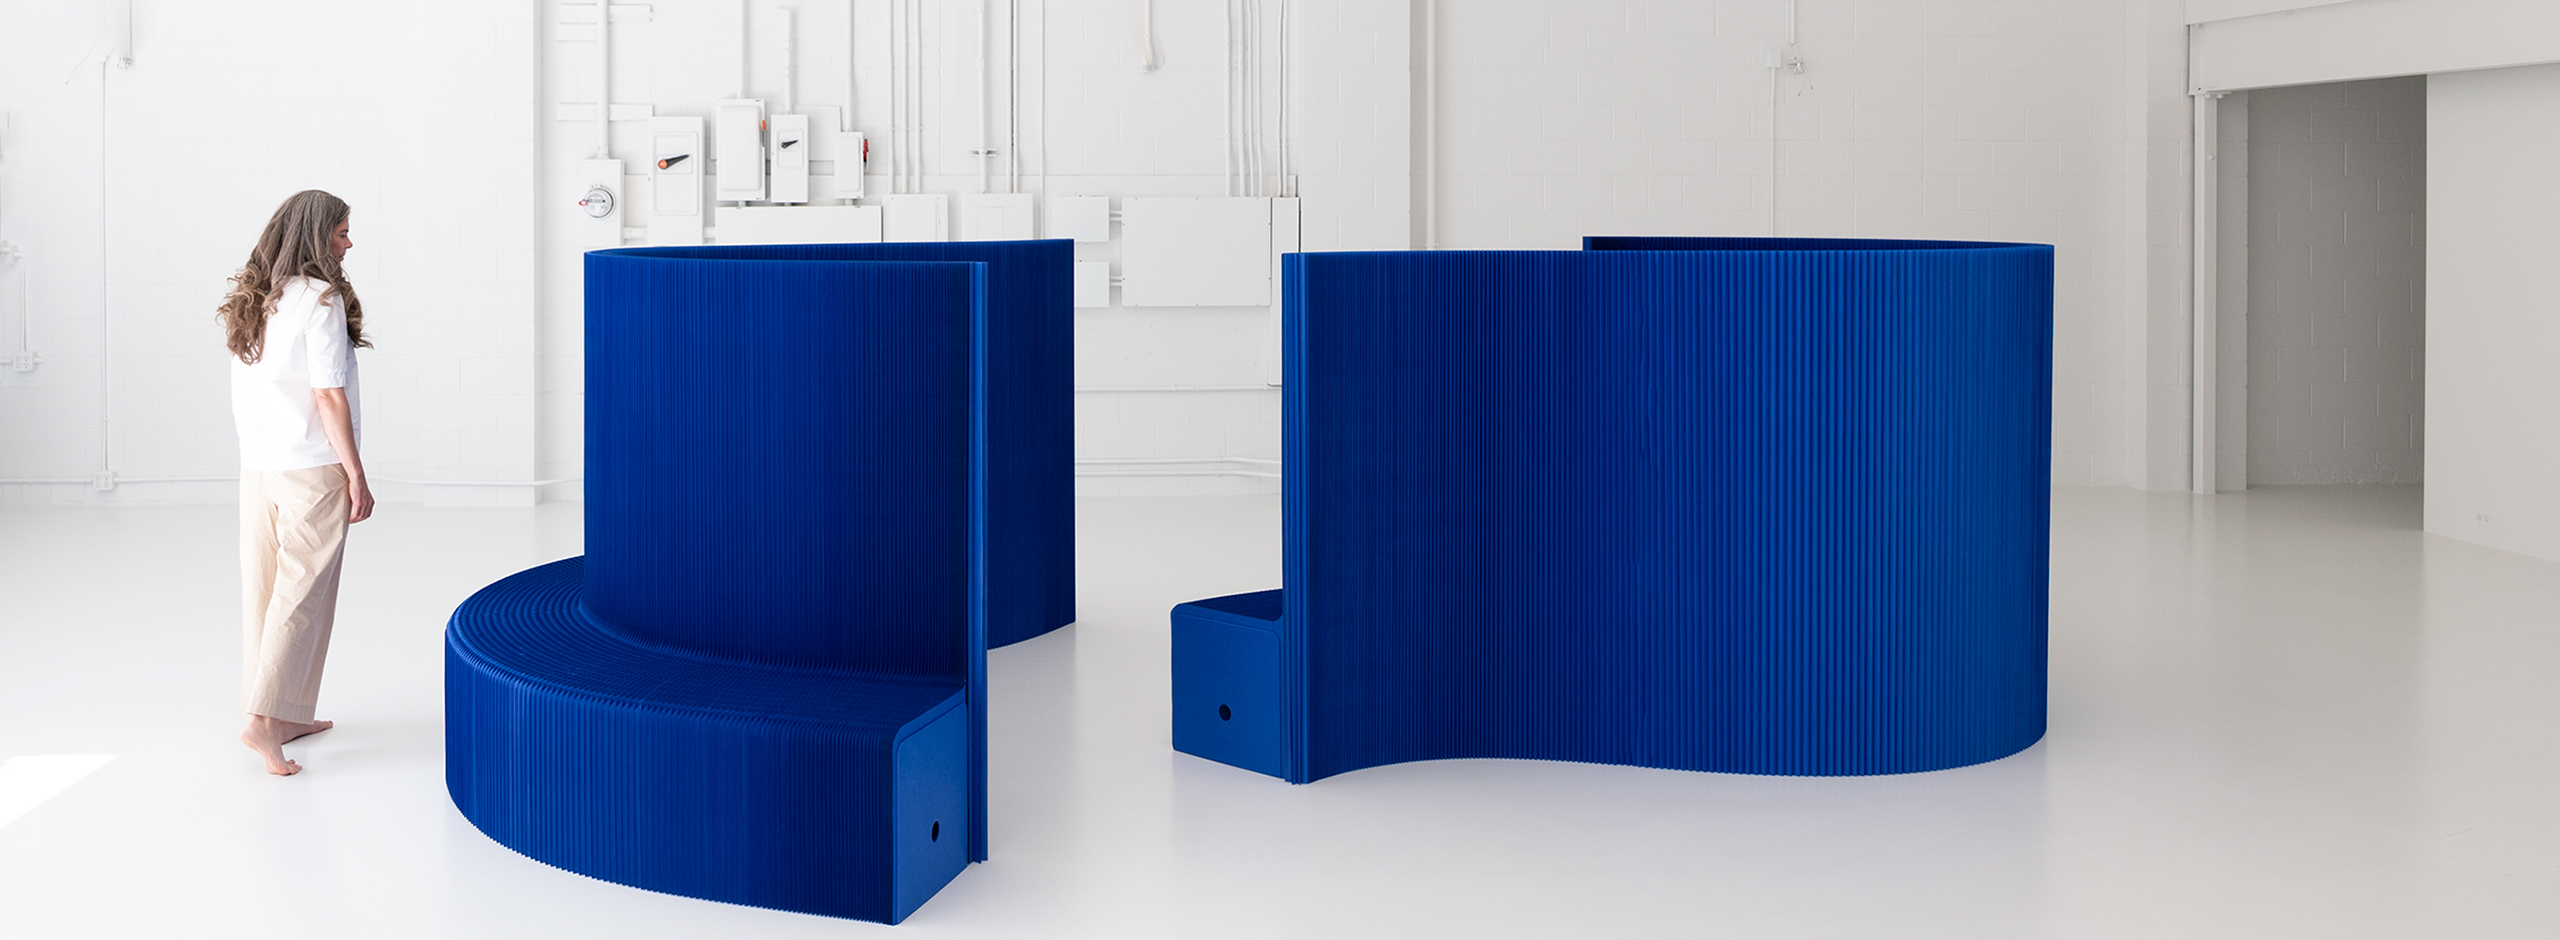 molo-modular-paper-furniture-blue-expanding-benchwall